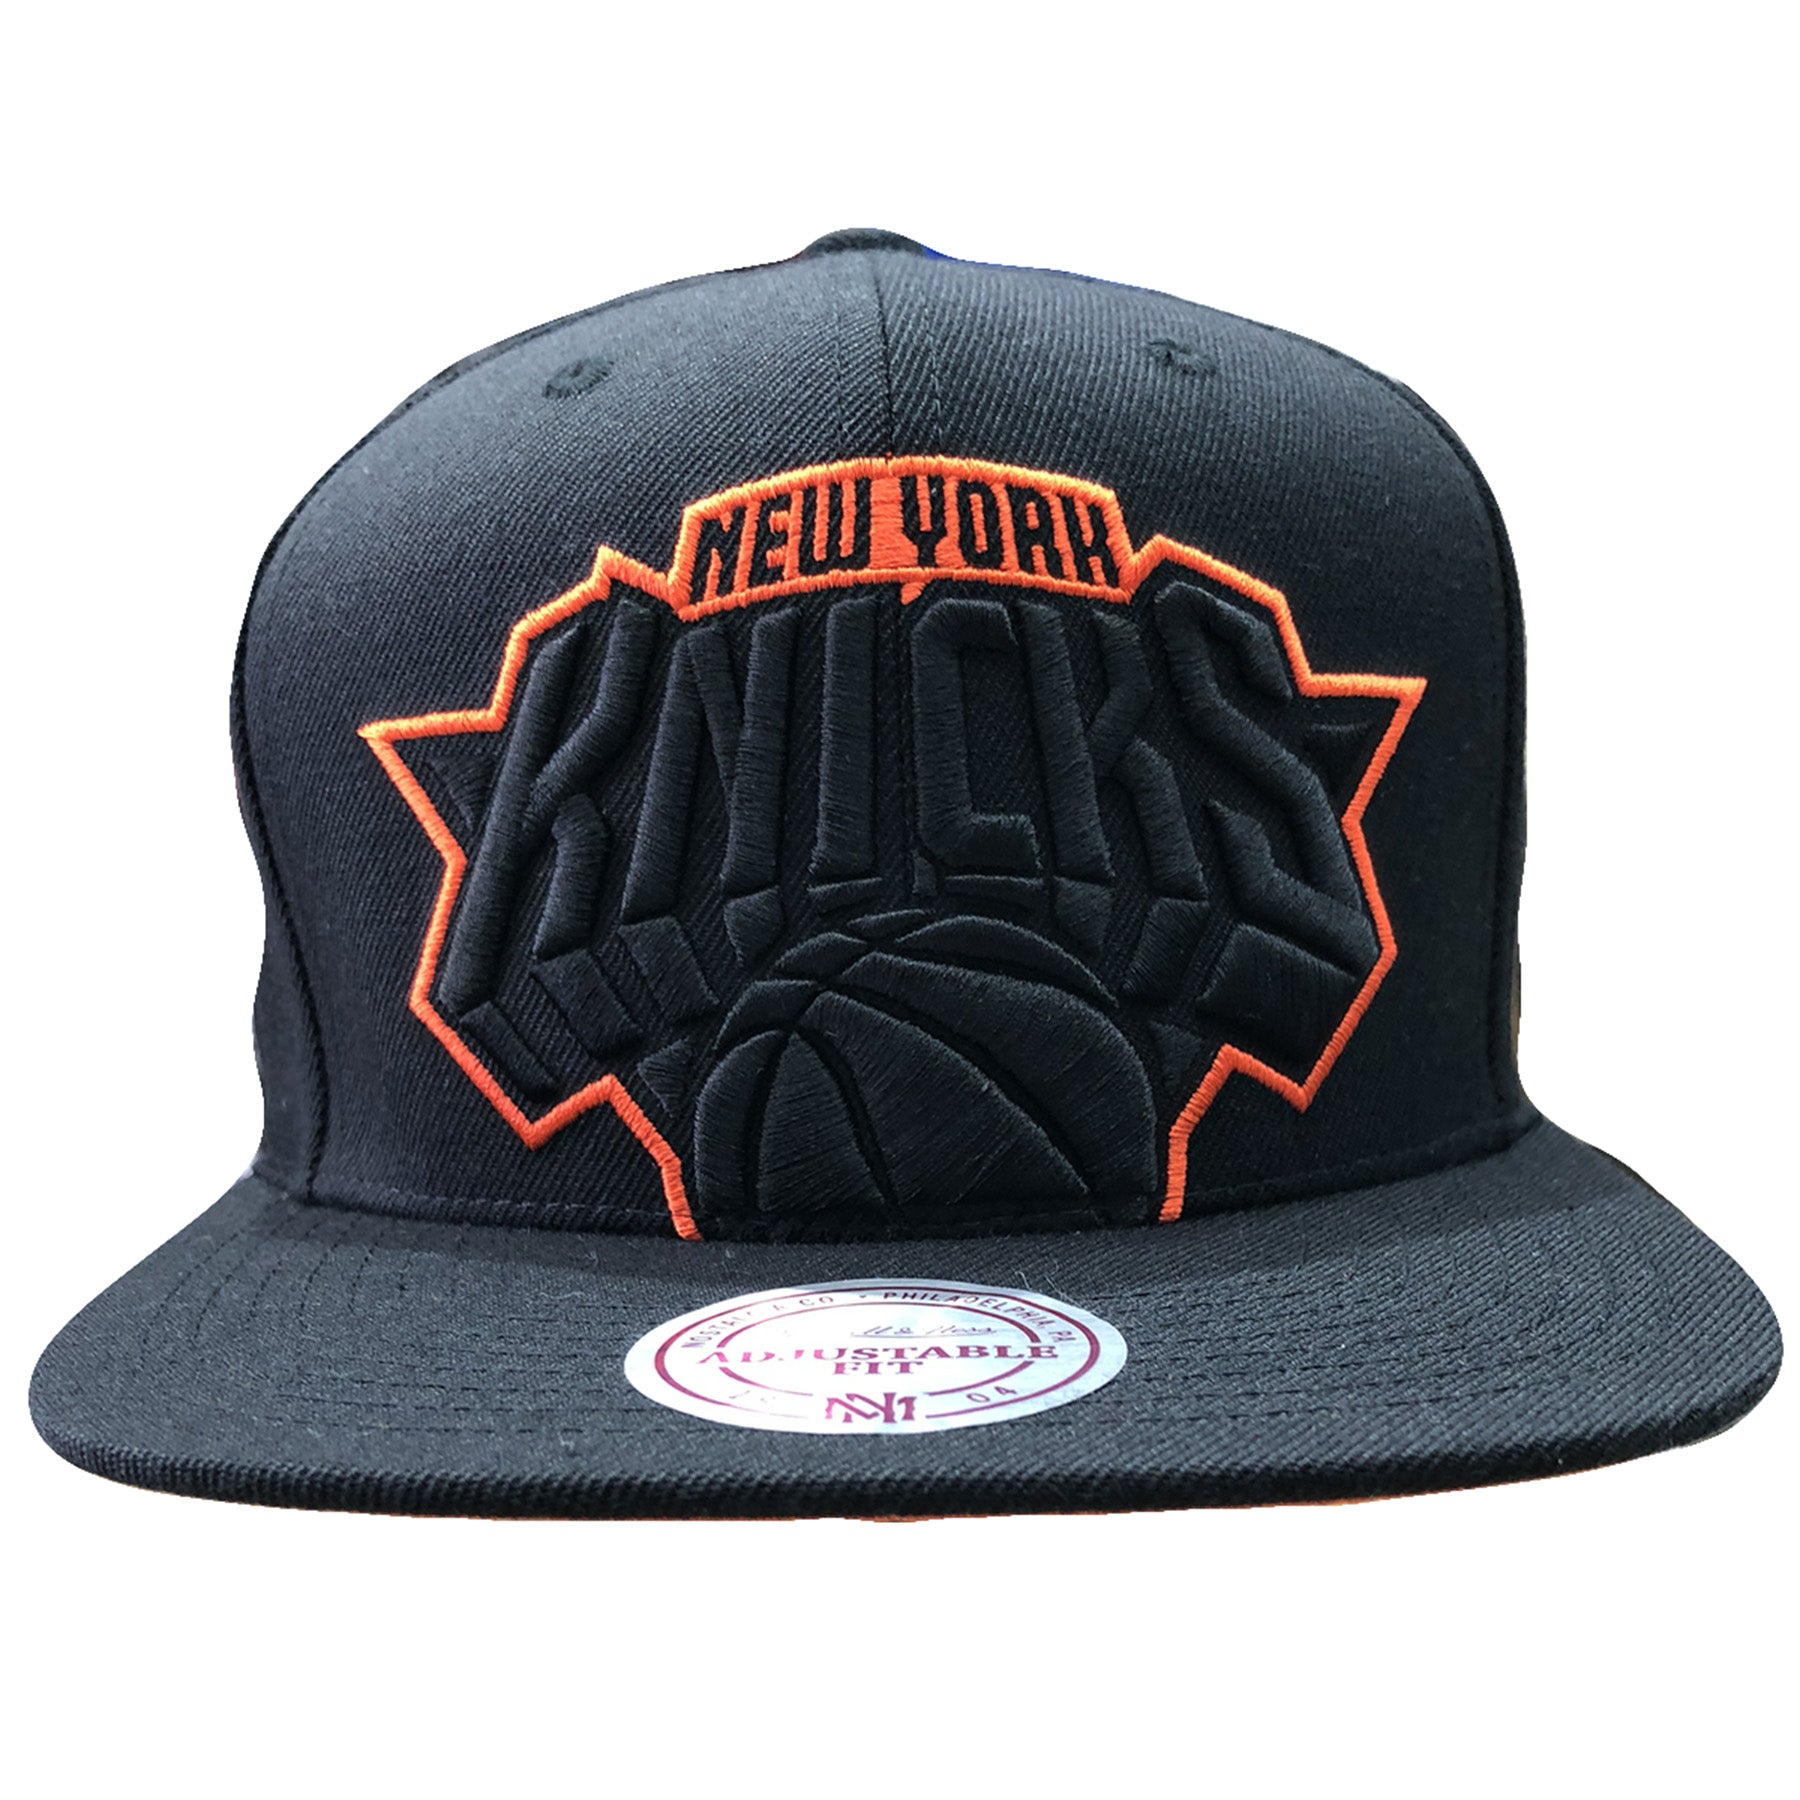 5680fe0592e17 Embroidered on the front of the new york knicks black snapback hat is a  knicks logo